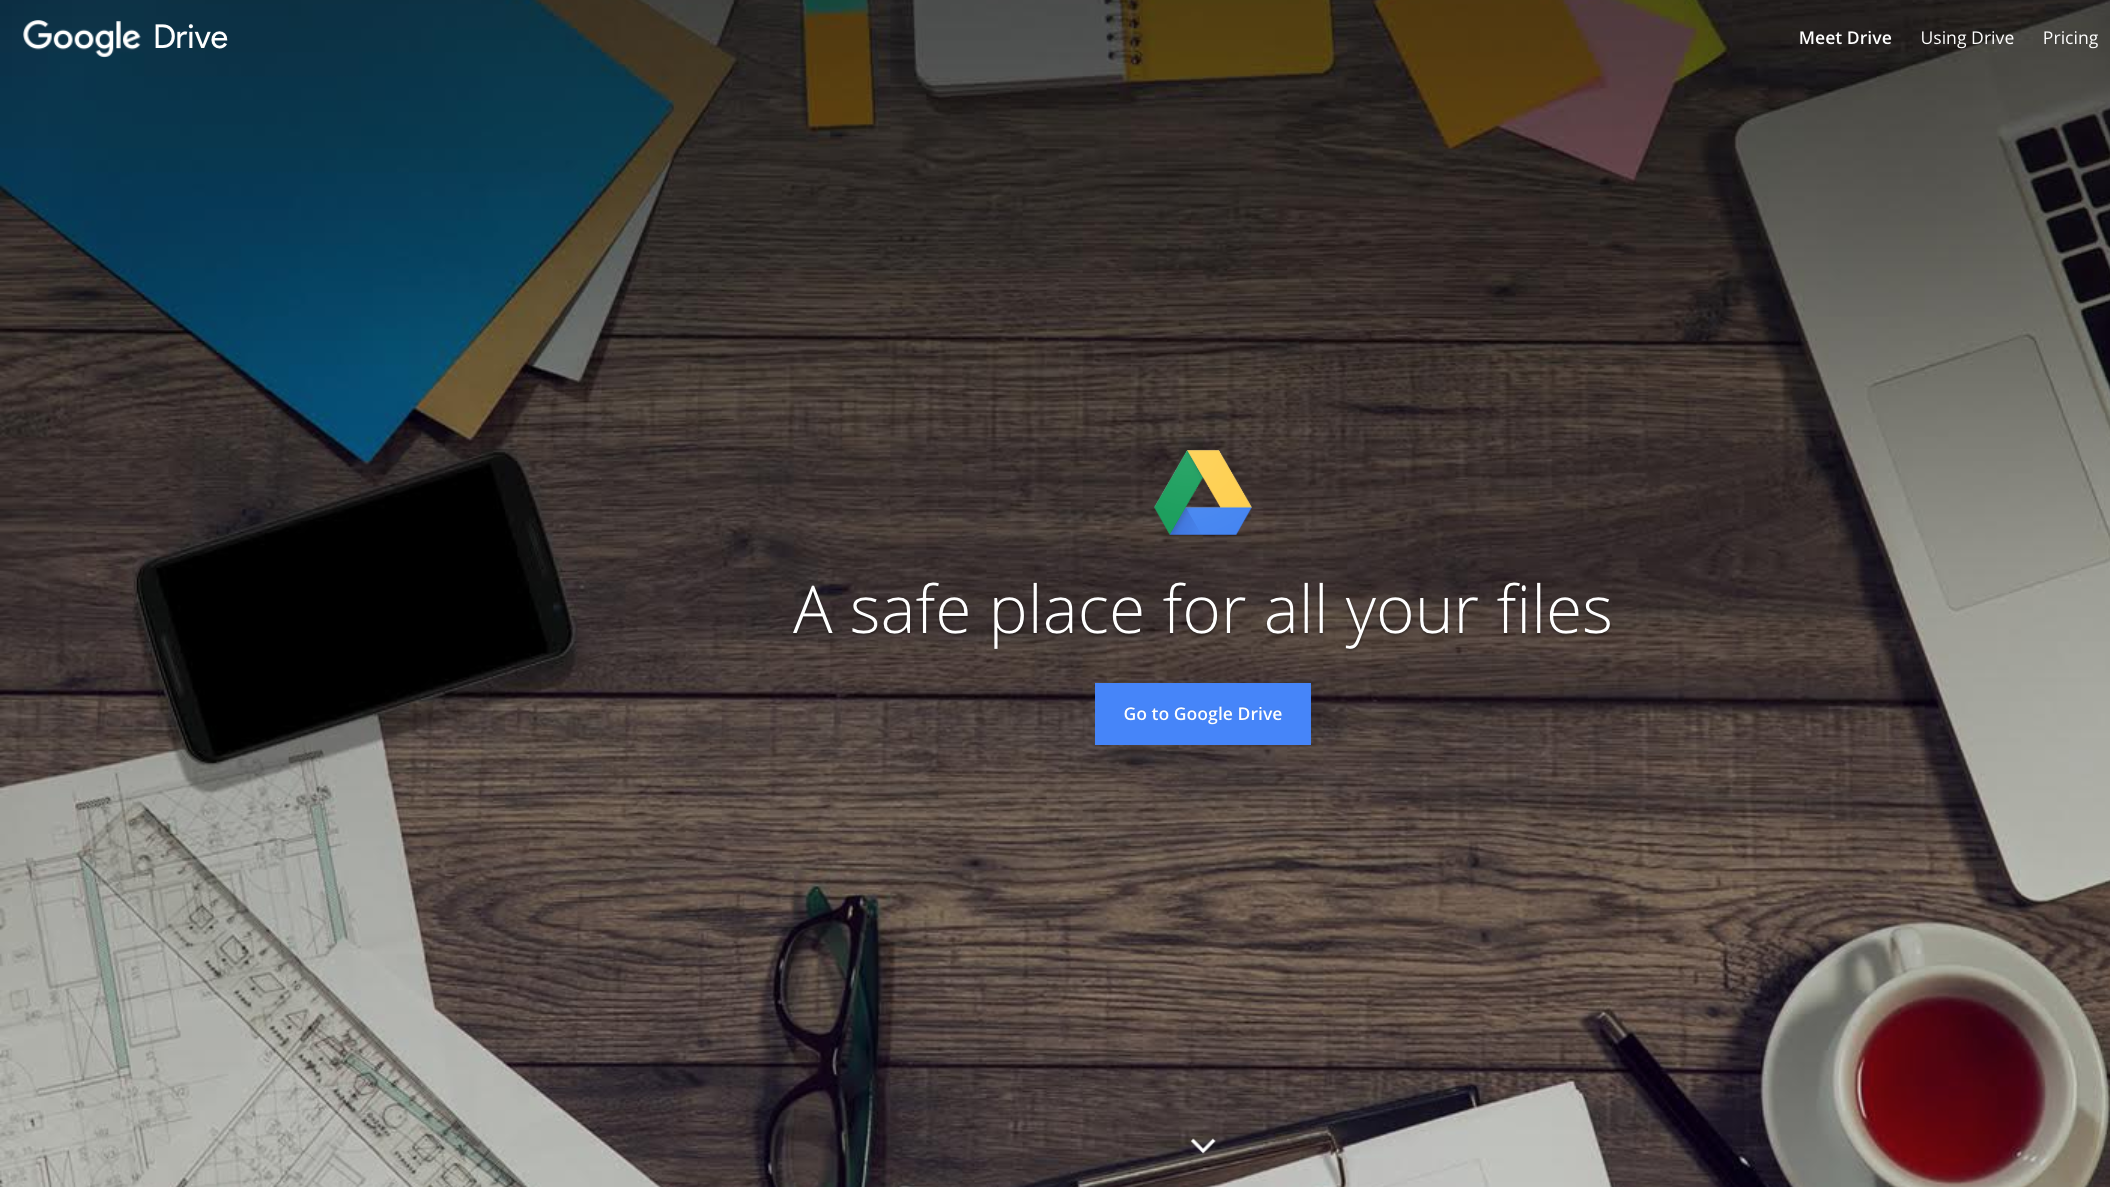 How to send large files: The best ways to share files online